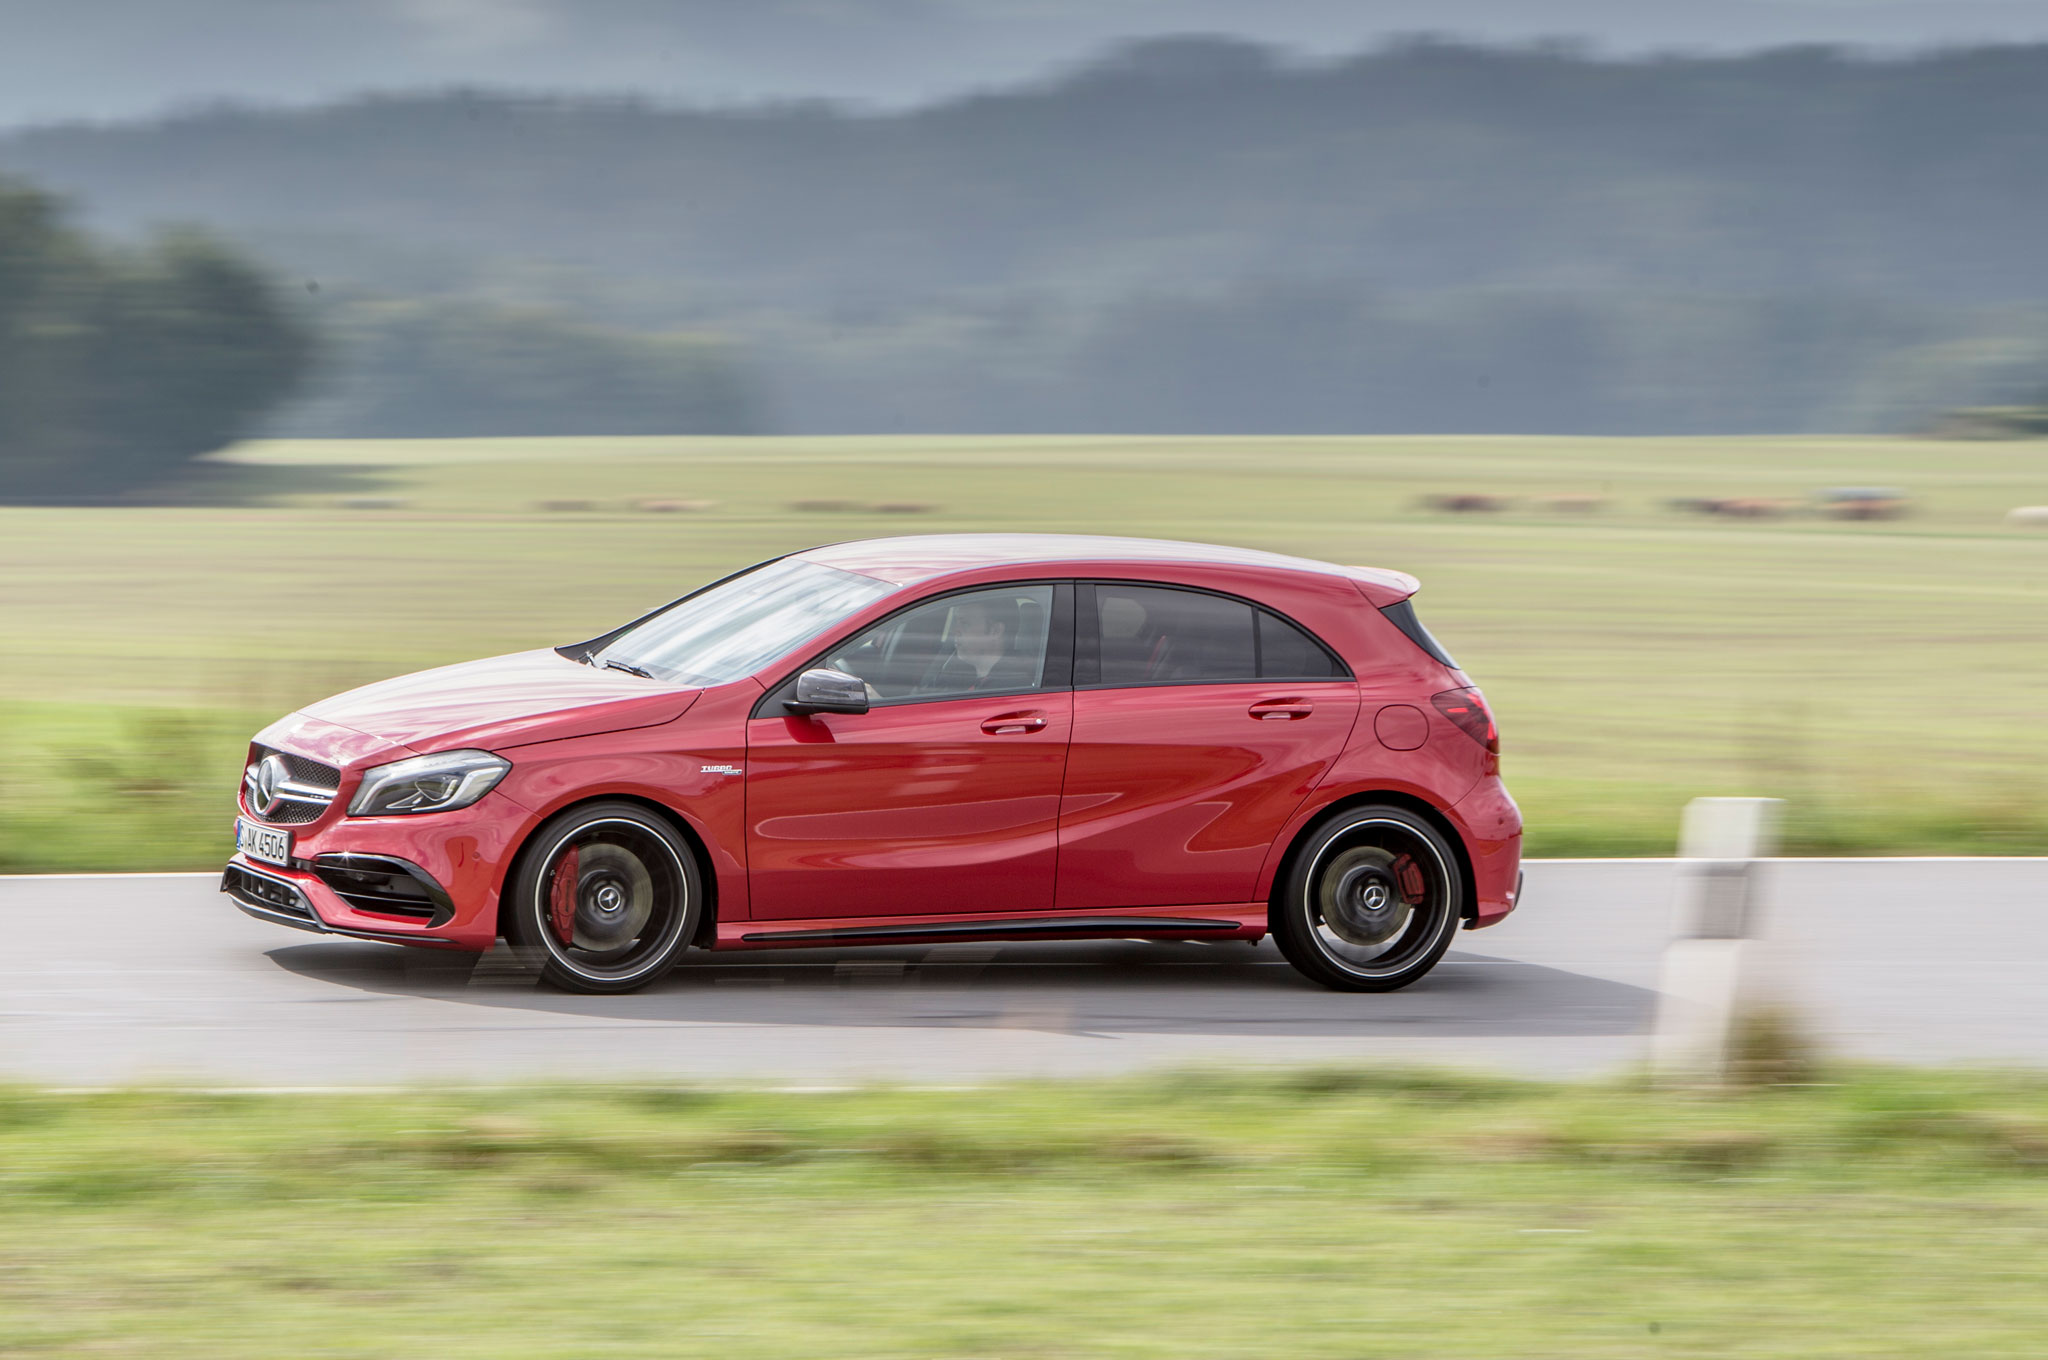 2016 mercedes amg a45 4matic review for Mercedes benz a 45 amg 4matic